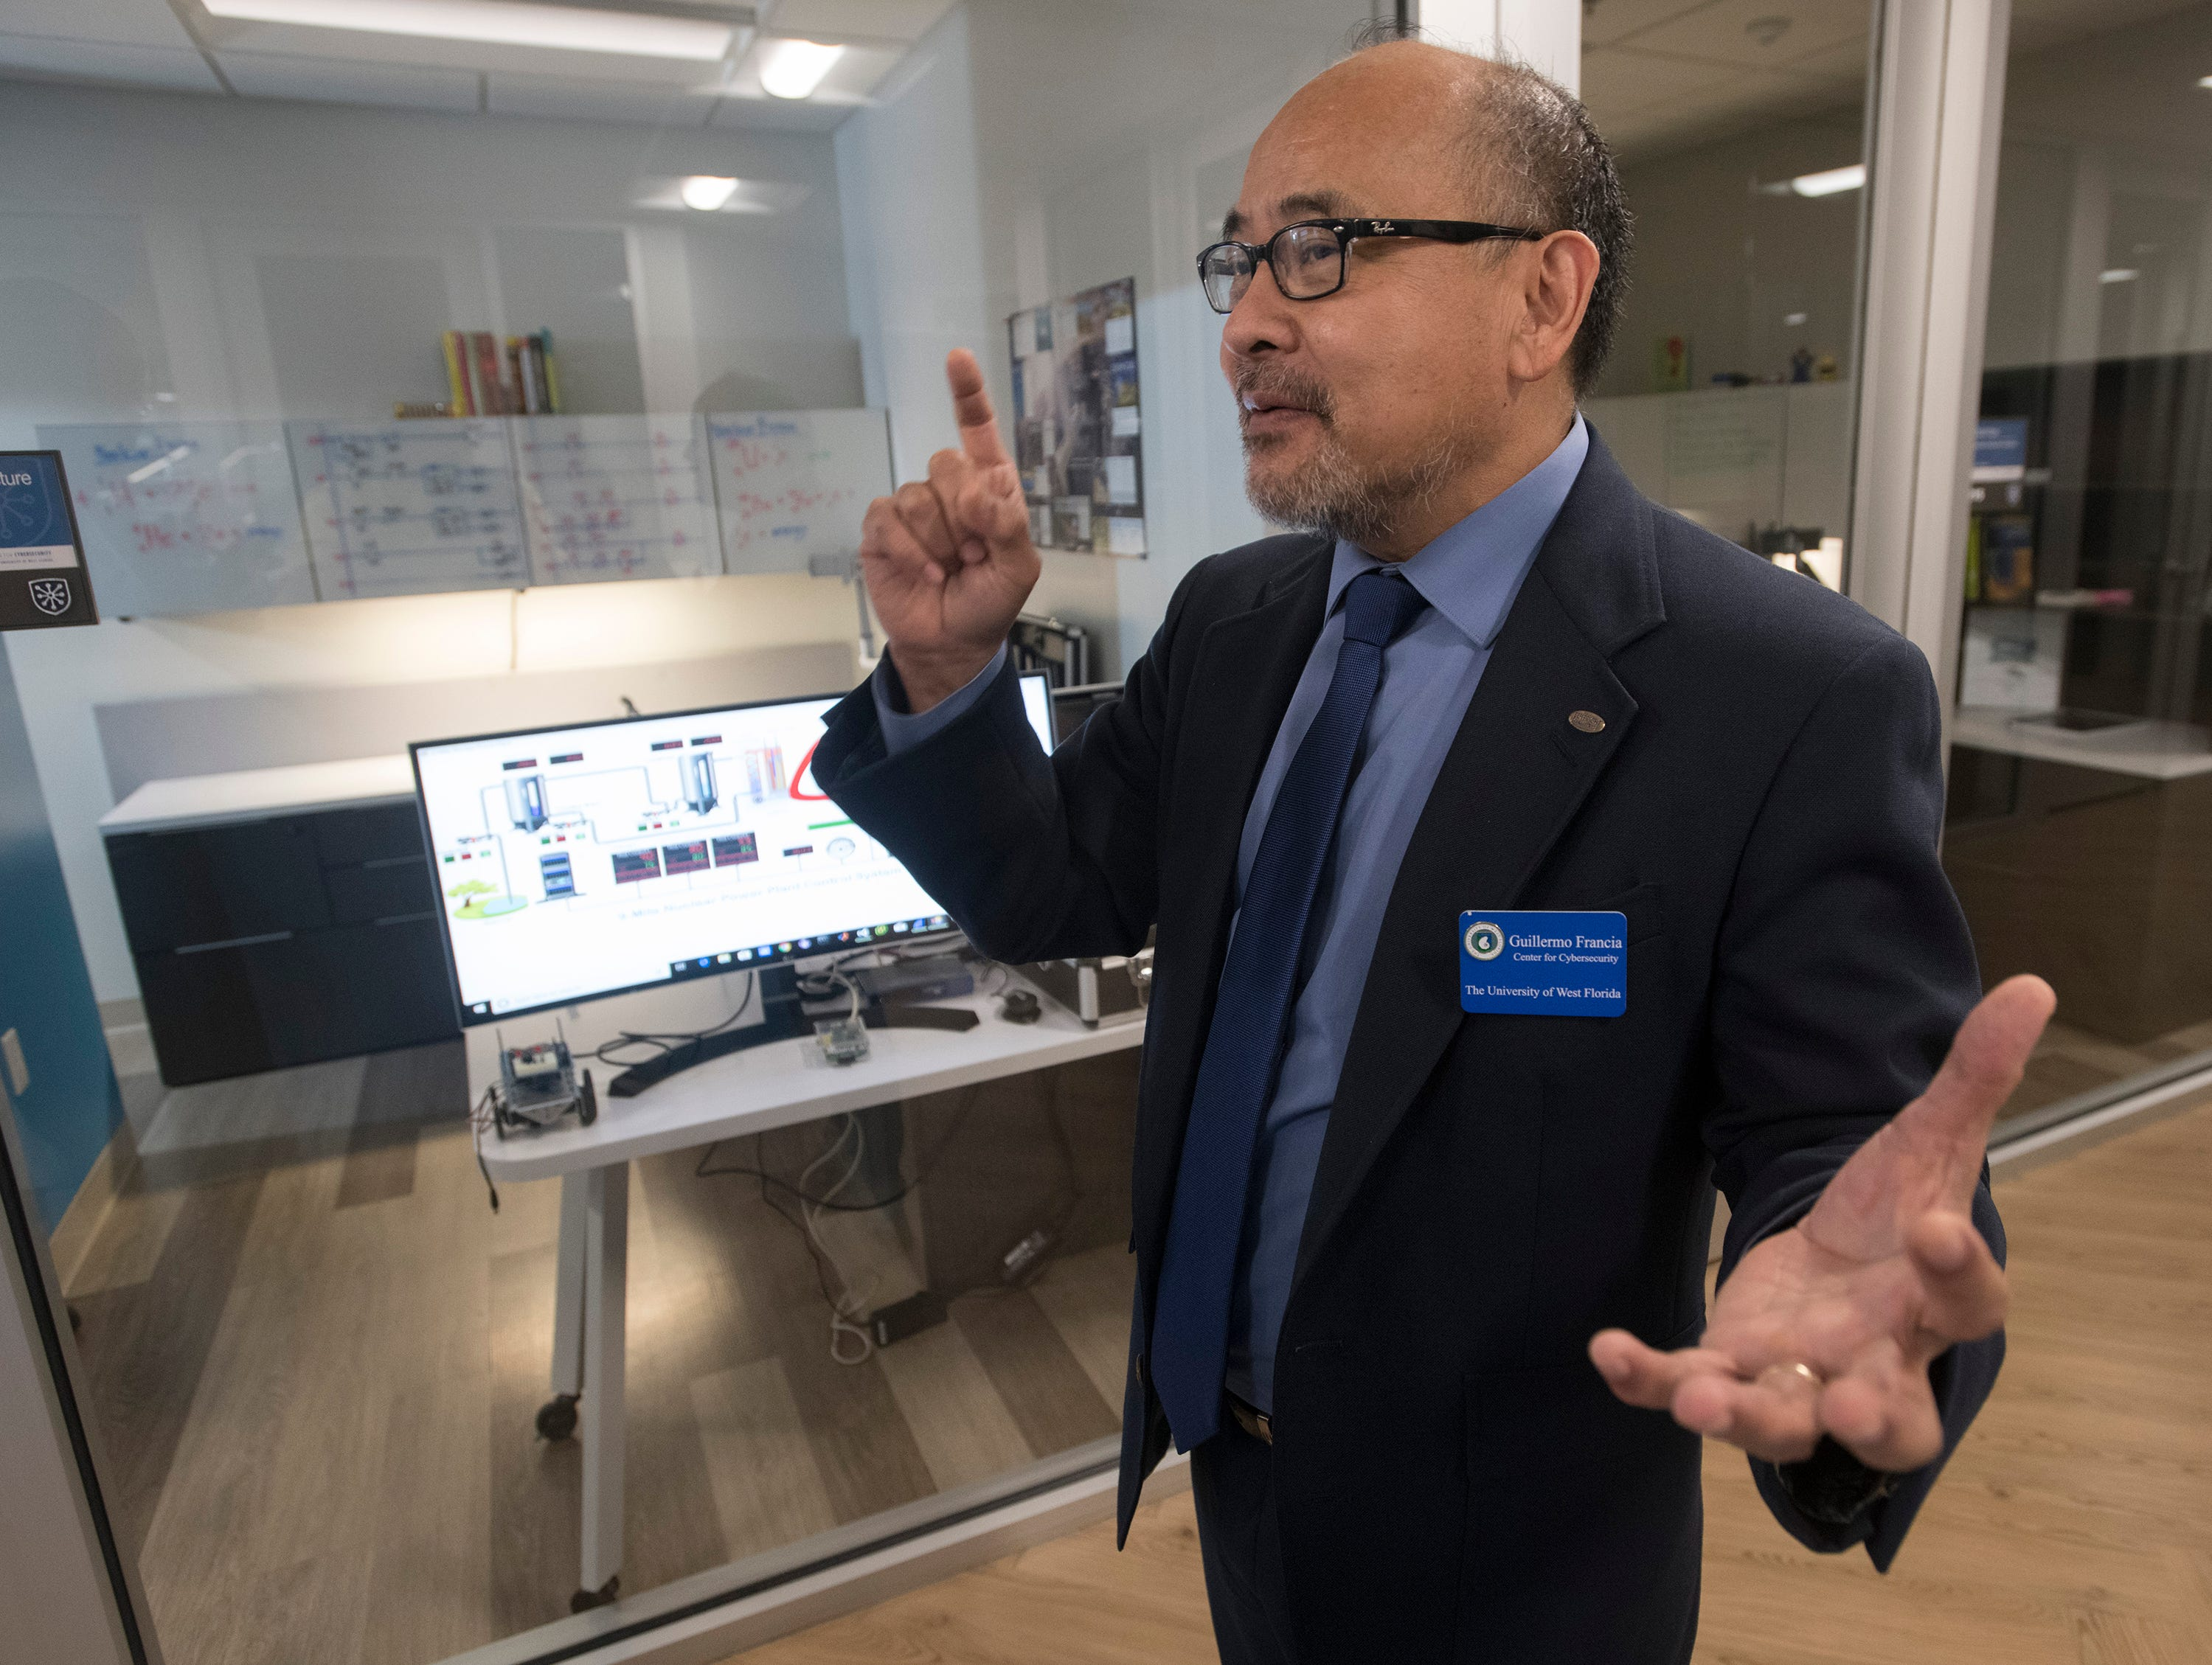 Guillermo Francia describes the need for cybersecurity professionals to protect critical infrastructure during a tour of the new Center for Cybersecurity on Friday, April 12, 2019. Located in the Studer Community Institute building the new  UWF center will increase the university's presence in downtown Pensacola.